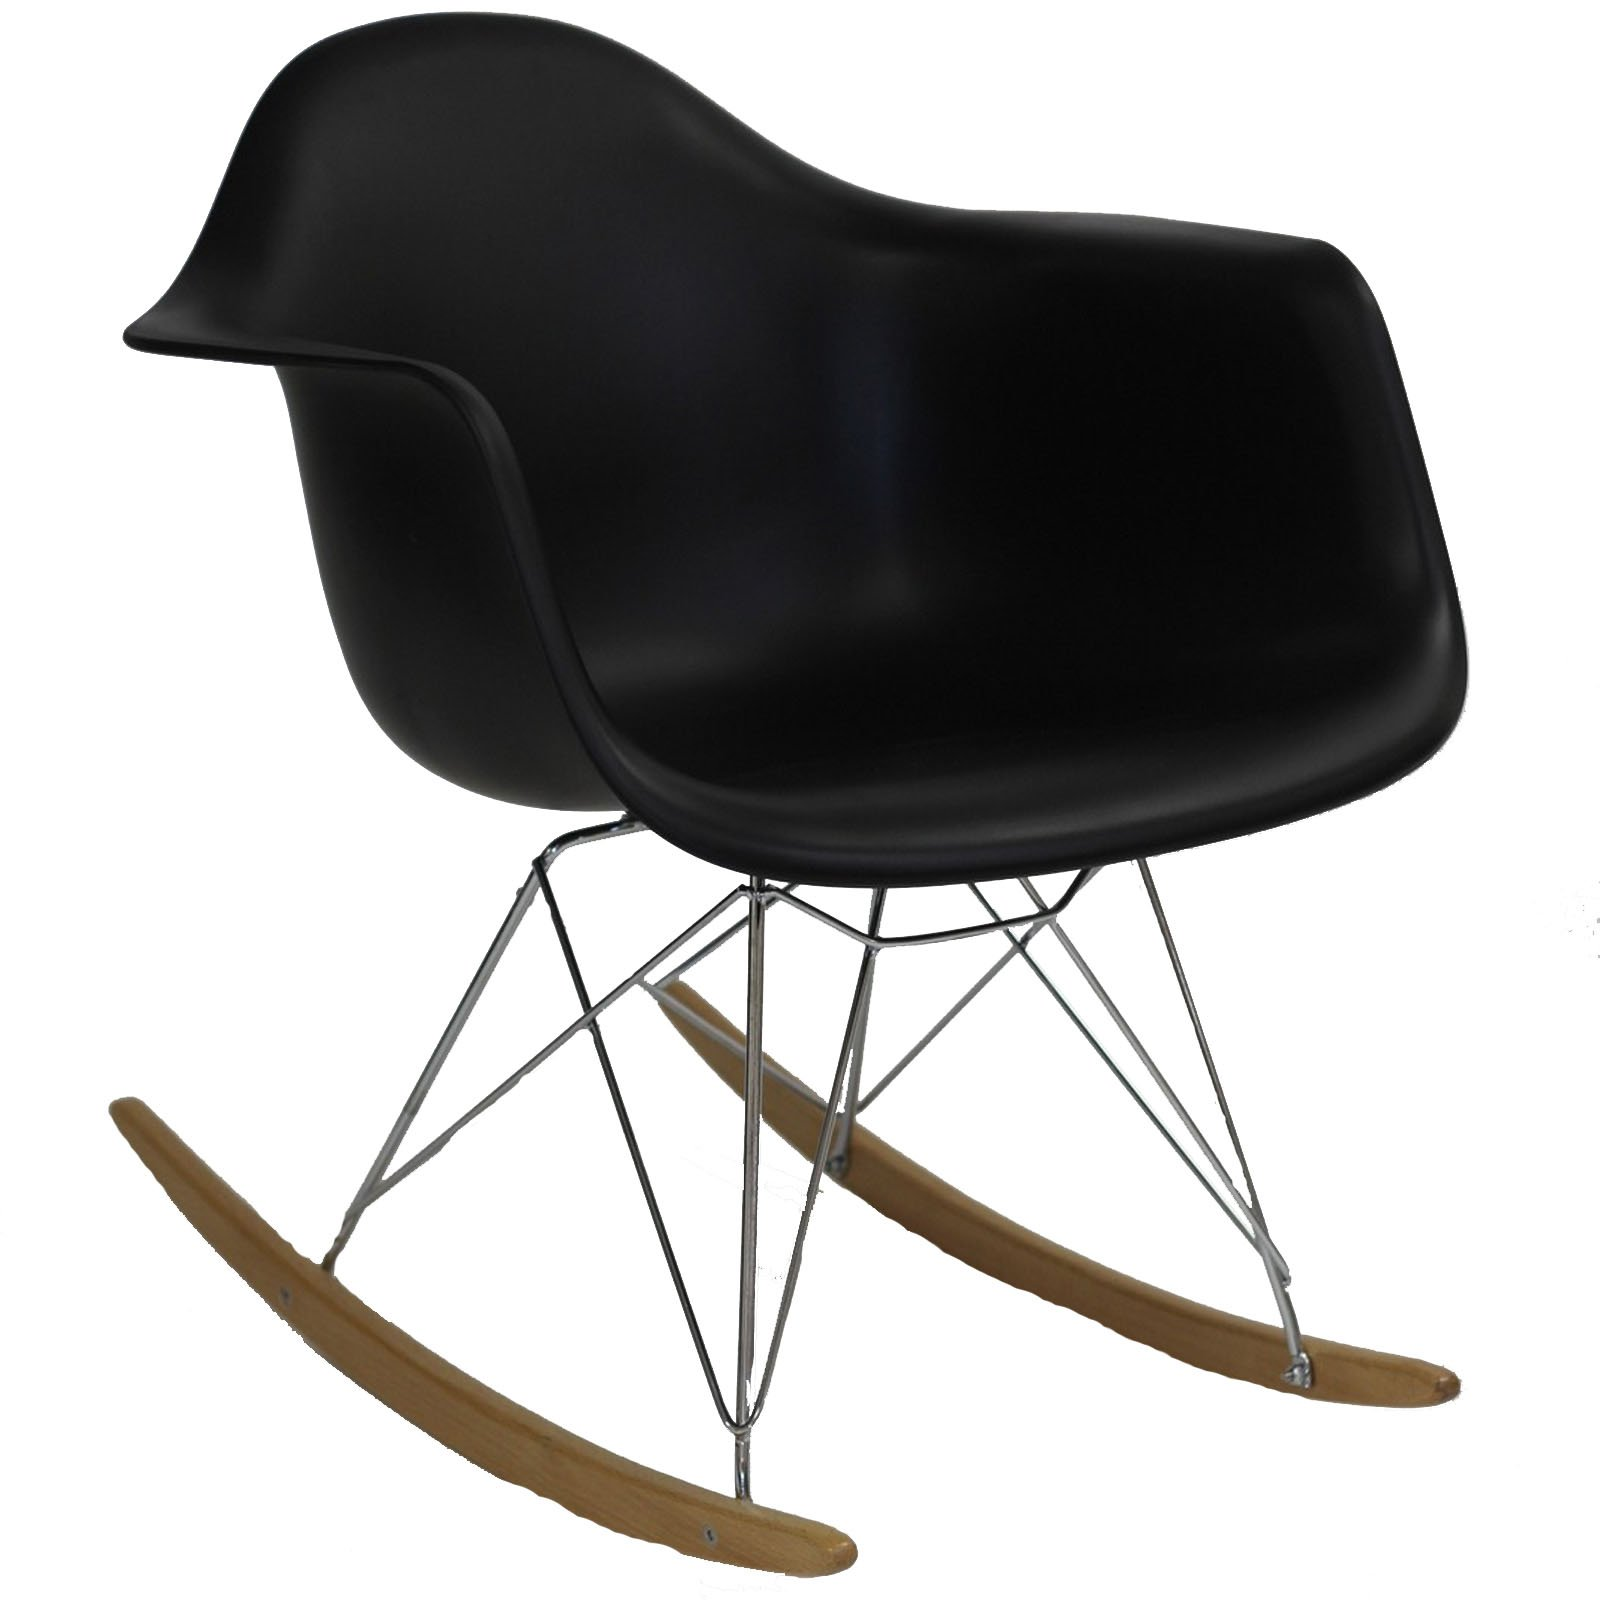 Modway Rocker Mid-Century Modern Molded Plastic Living Room Lounge Chair Rocker in Black by Modway